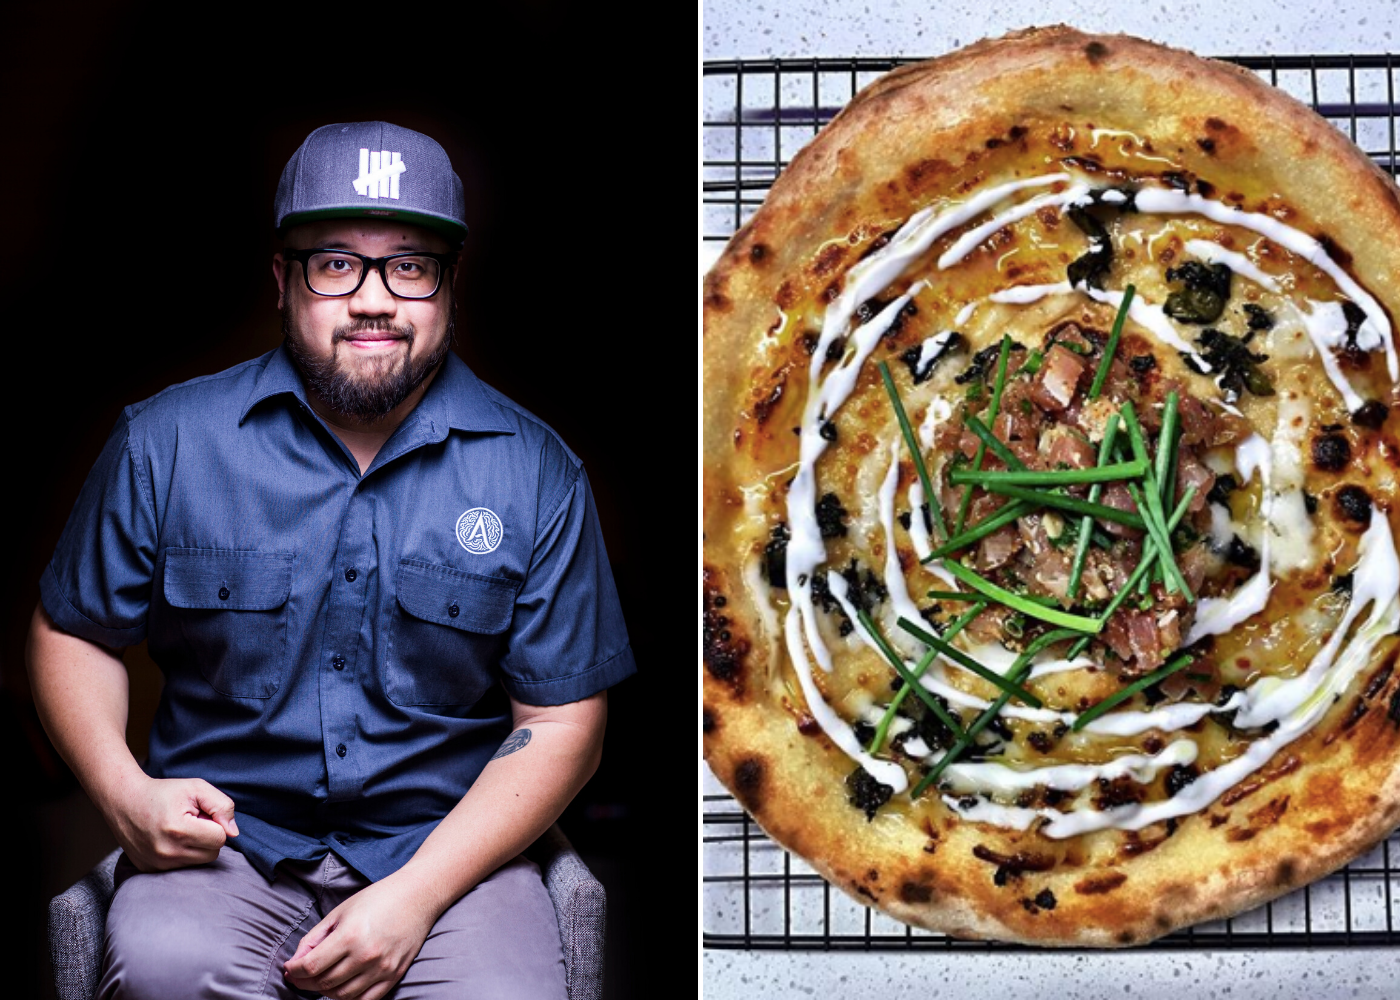 Small talk: Bjorn Shen on Artichoke's hot new menu, his secret pizza bar and staying on top after 9 years